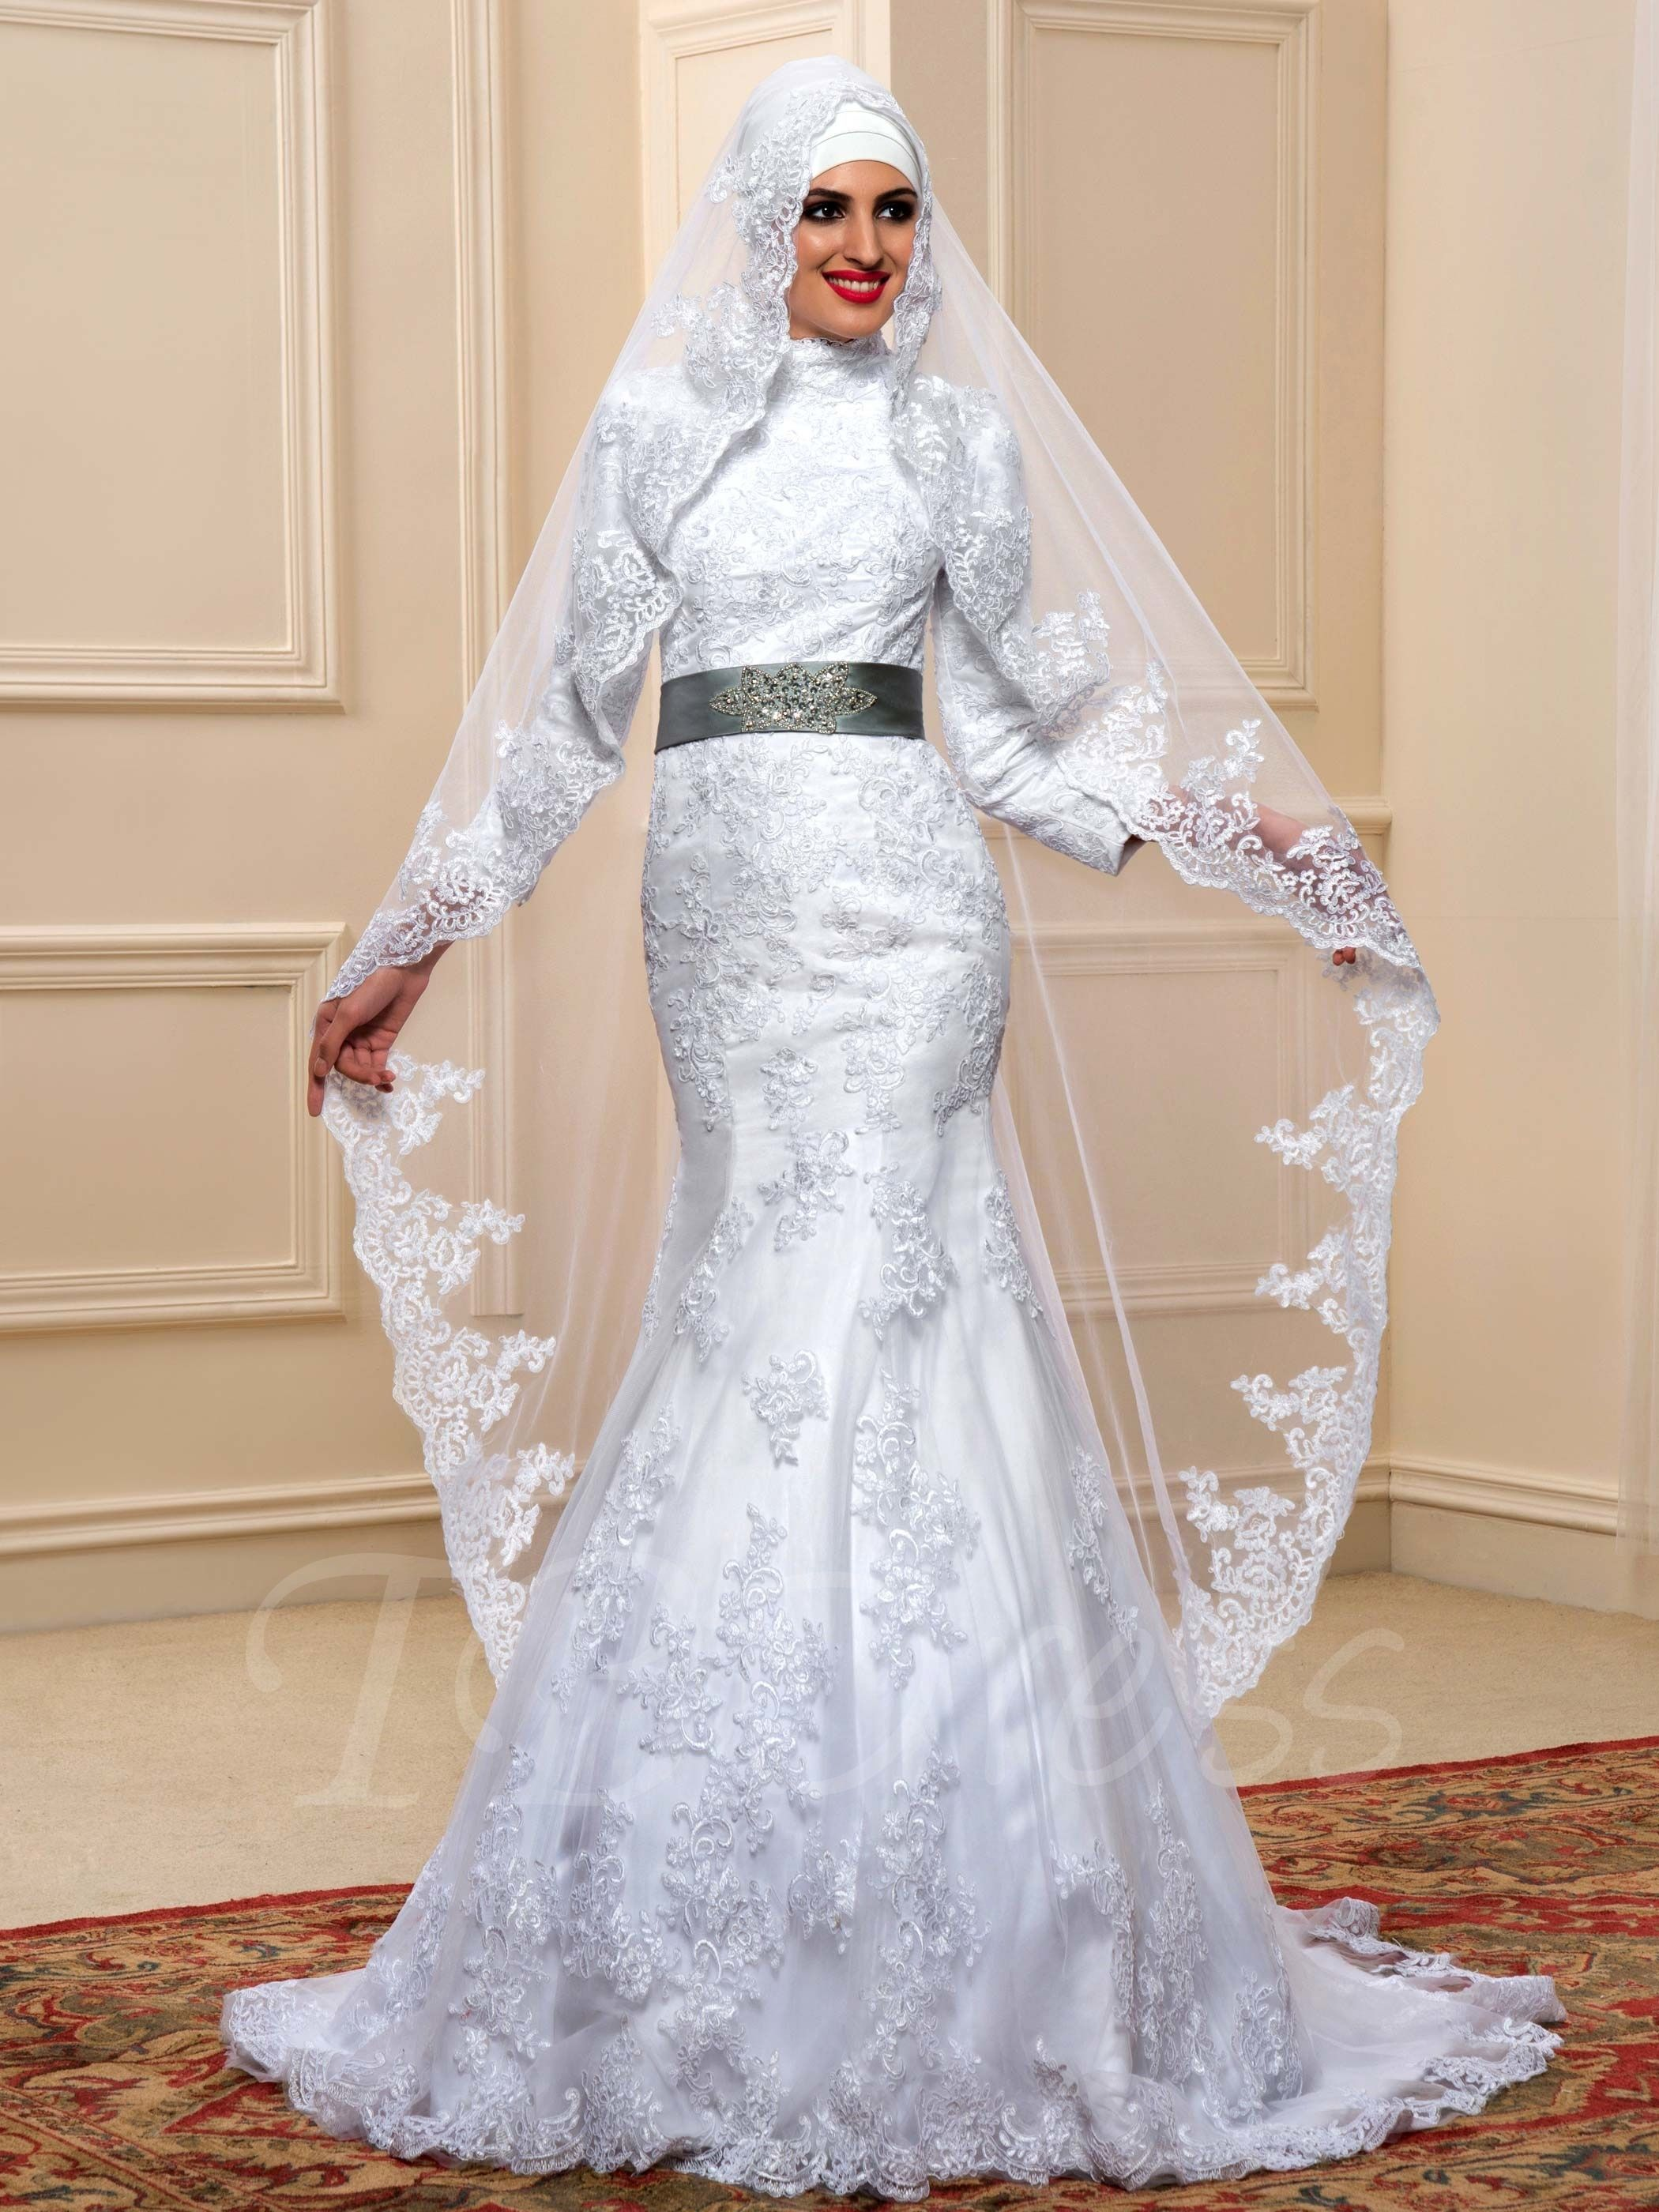 Tbdress Offers High Quality Long Sleeves Beading Lace Trumpet Mermaid Muslim Arabic Wedding Dress Dresses Unit Price Of 263 99